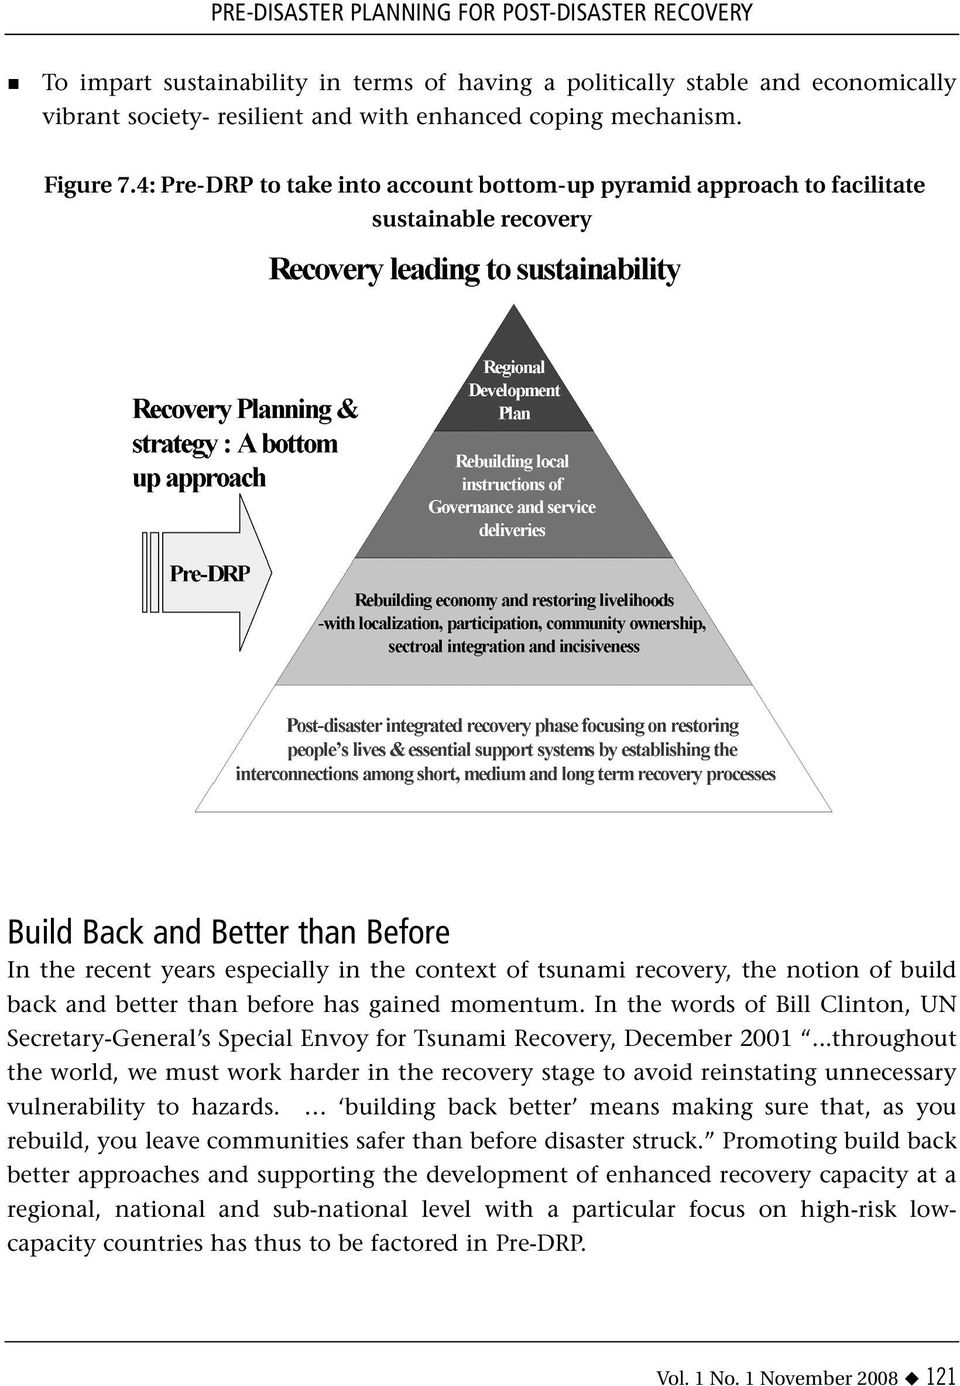 4: Pre-DRP to take into account bottom-up pyramid approach to facilitate sustainable recovery Build Back and Better than Before In the recent years especially in the context of tsunami recovery, the